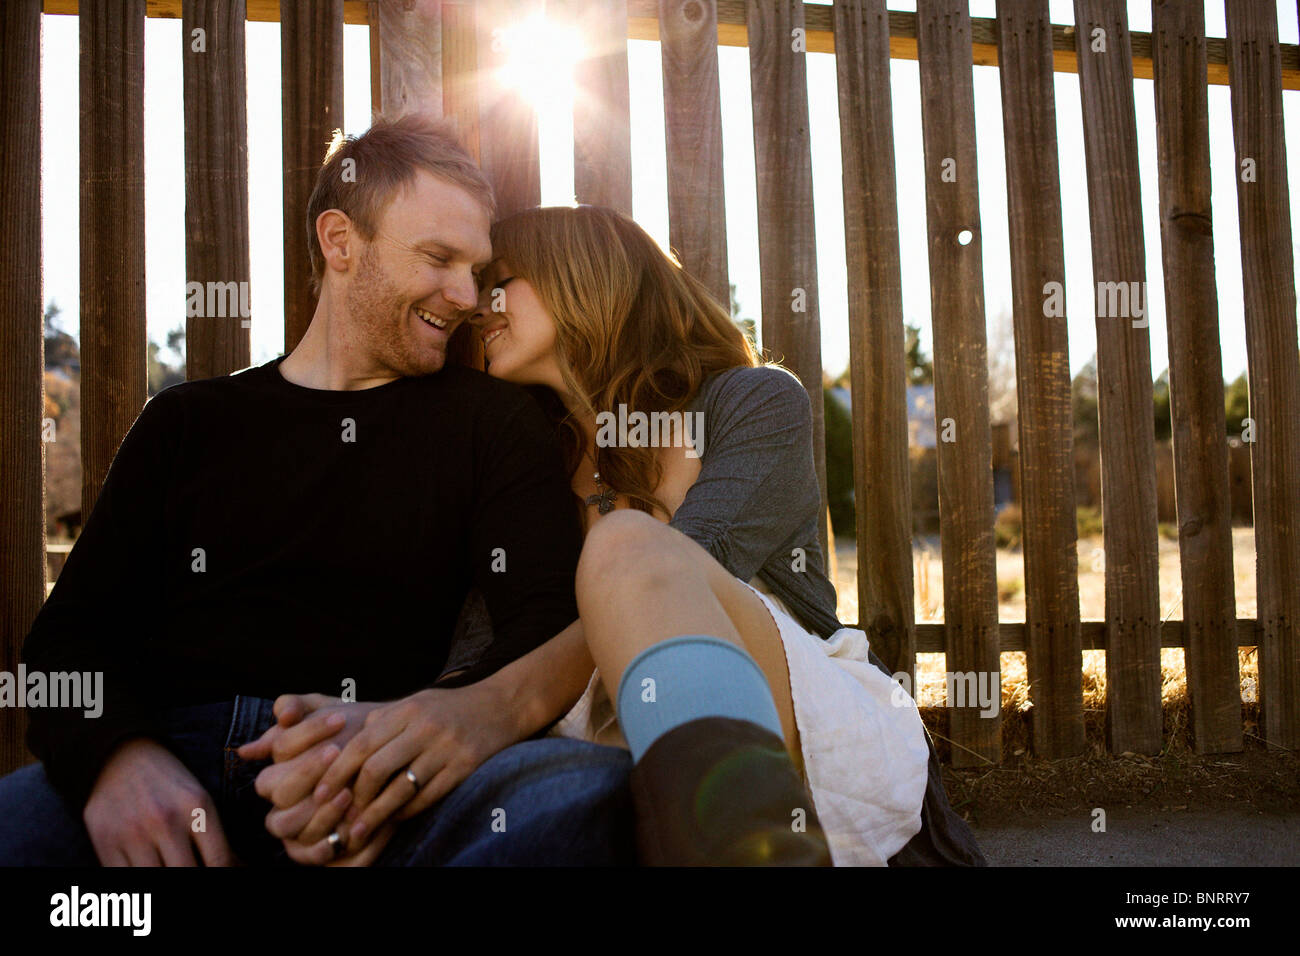 Couple sits against a fence. - Stock Image